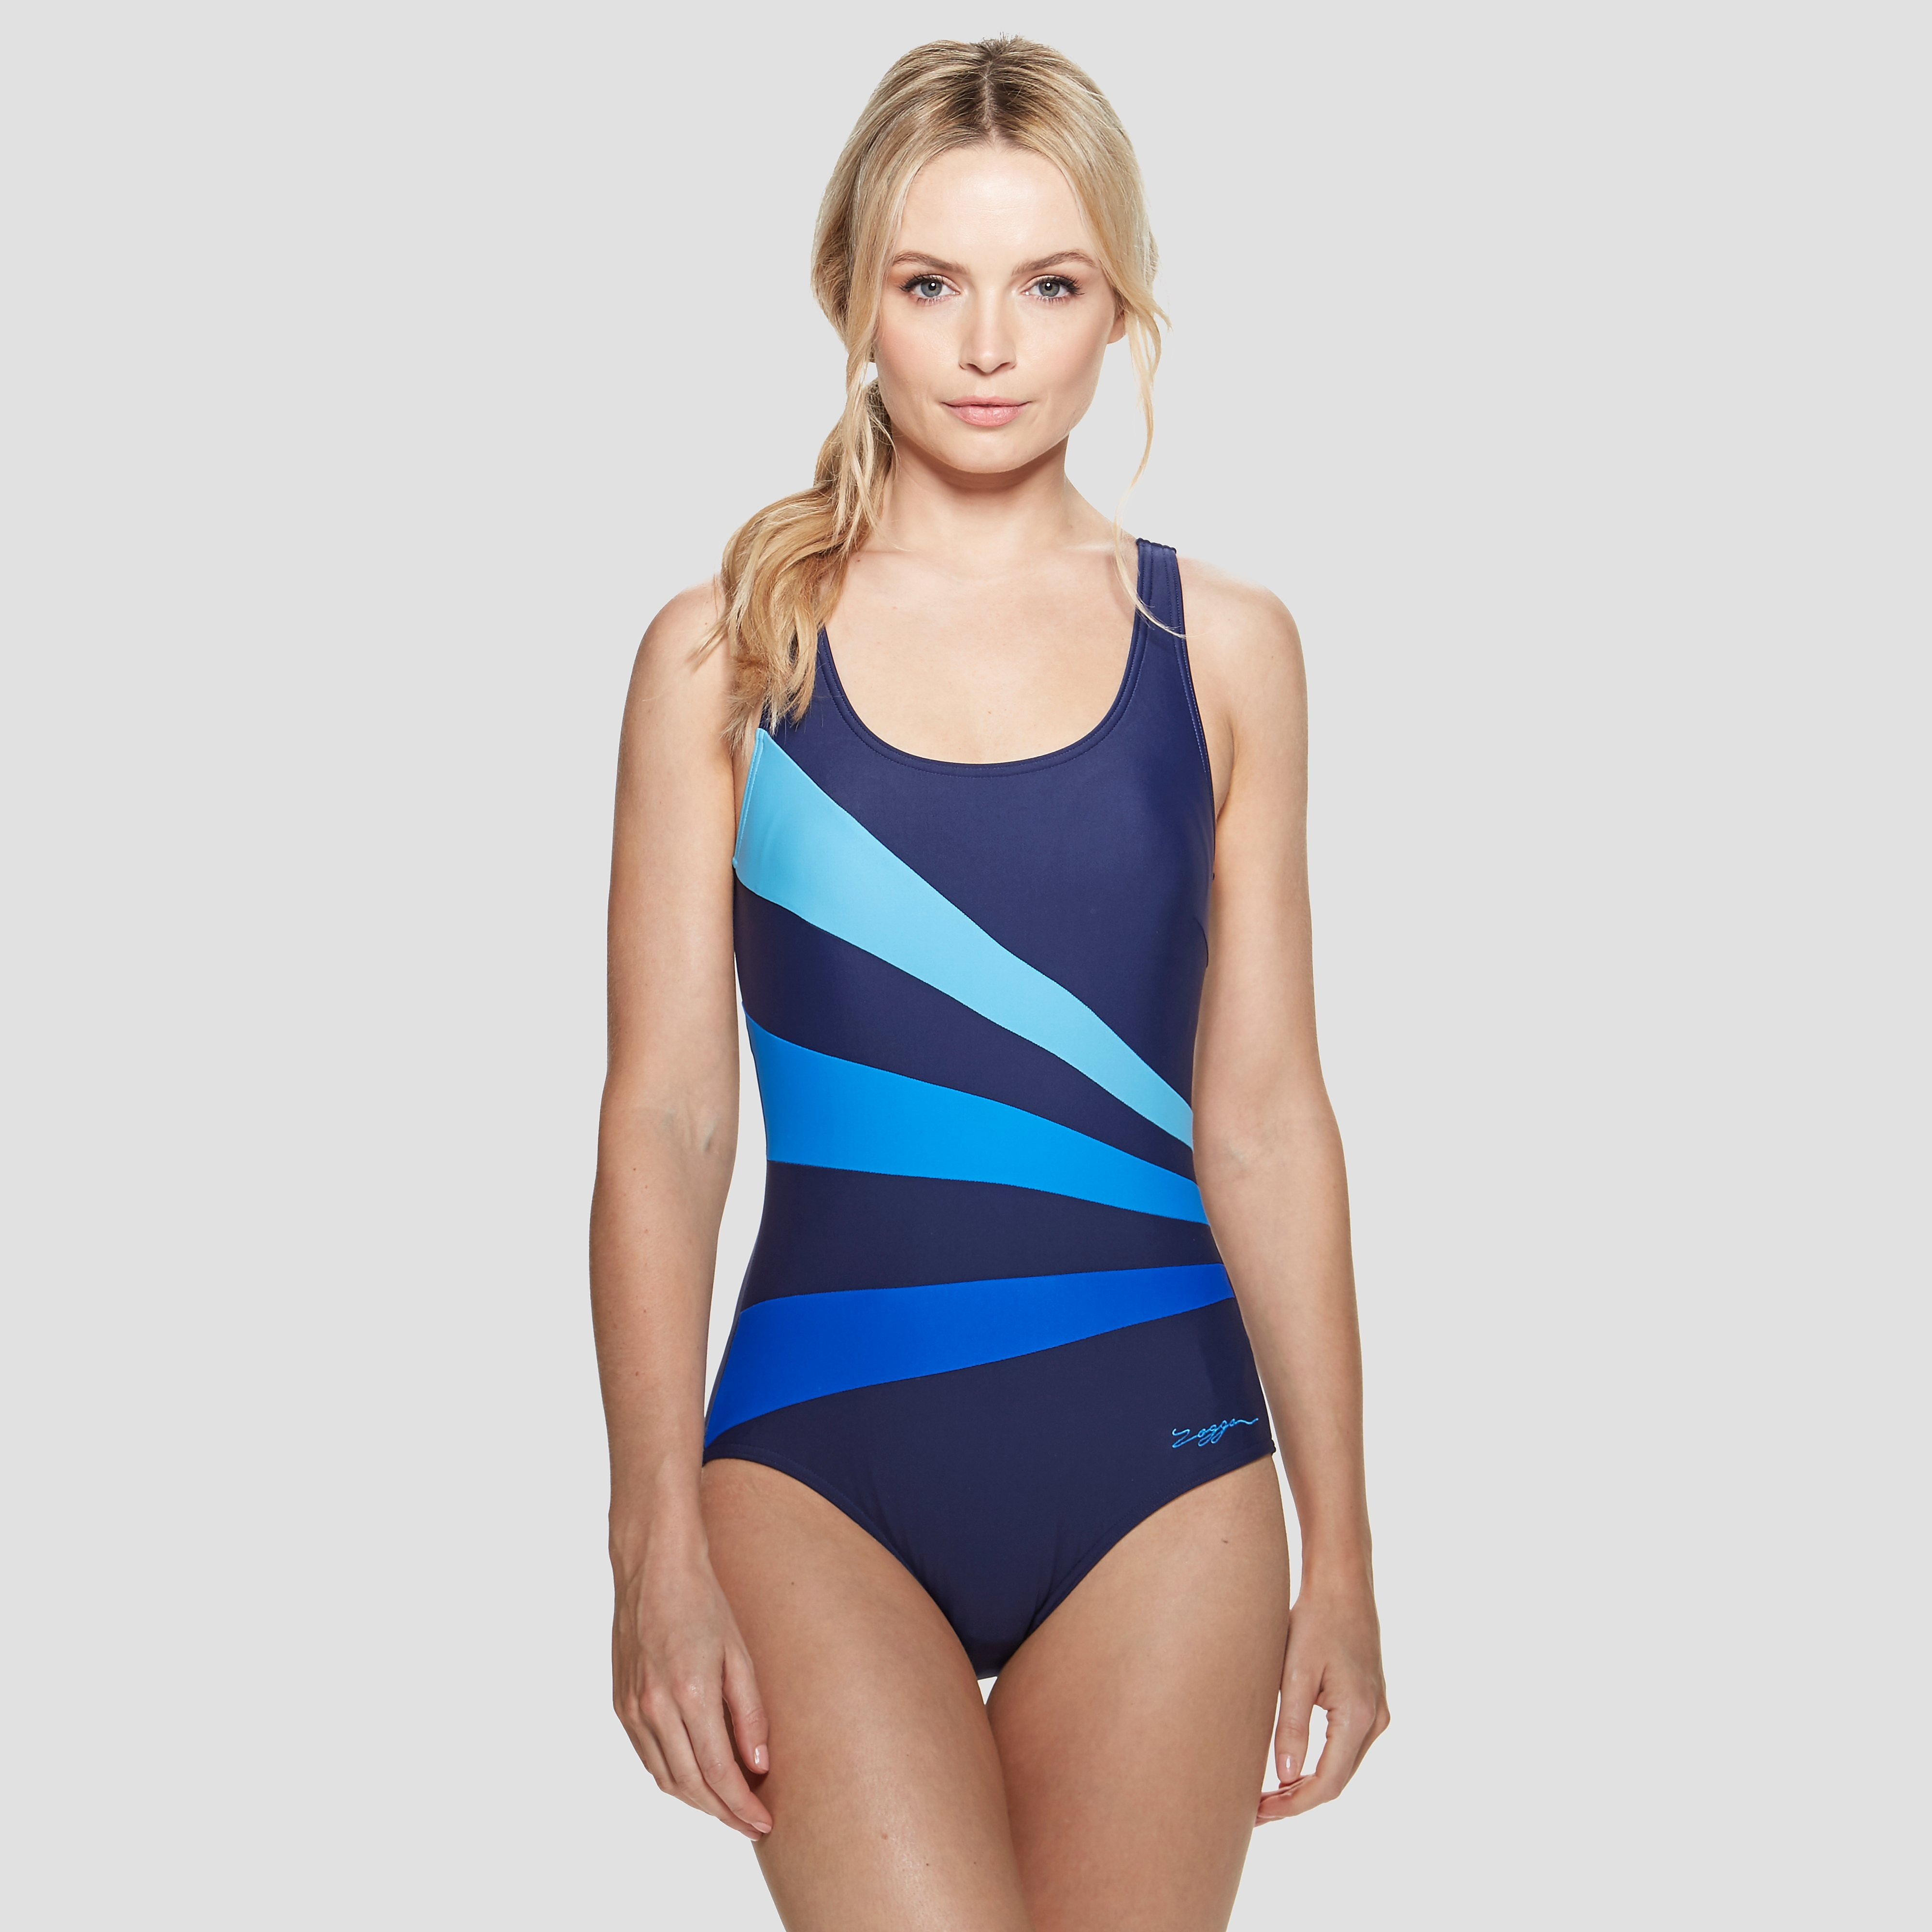 Zoggs Craftwork Sandon Scoopback Women's Swimsuit